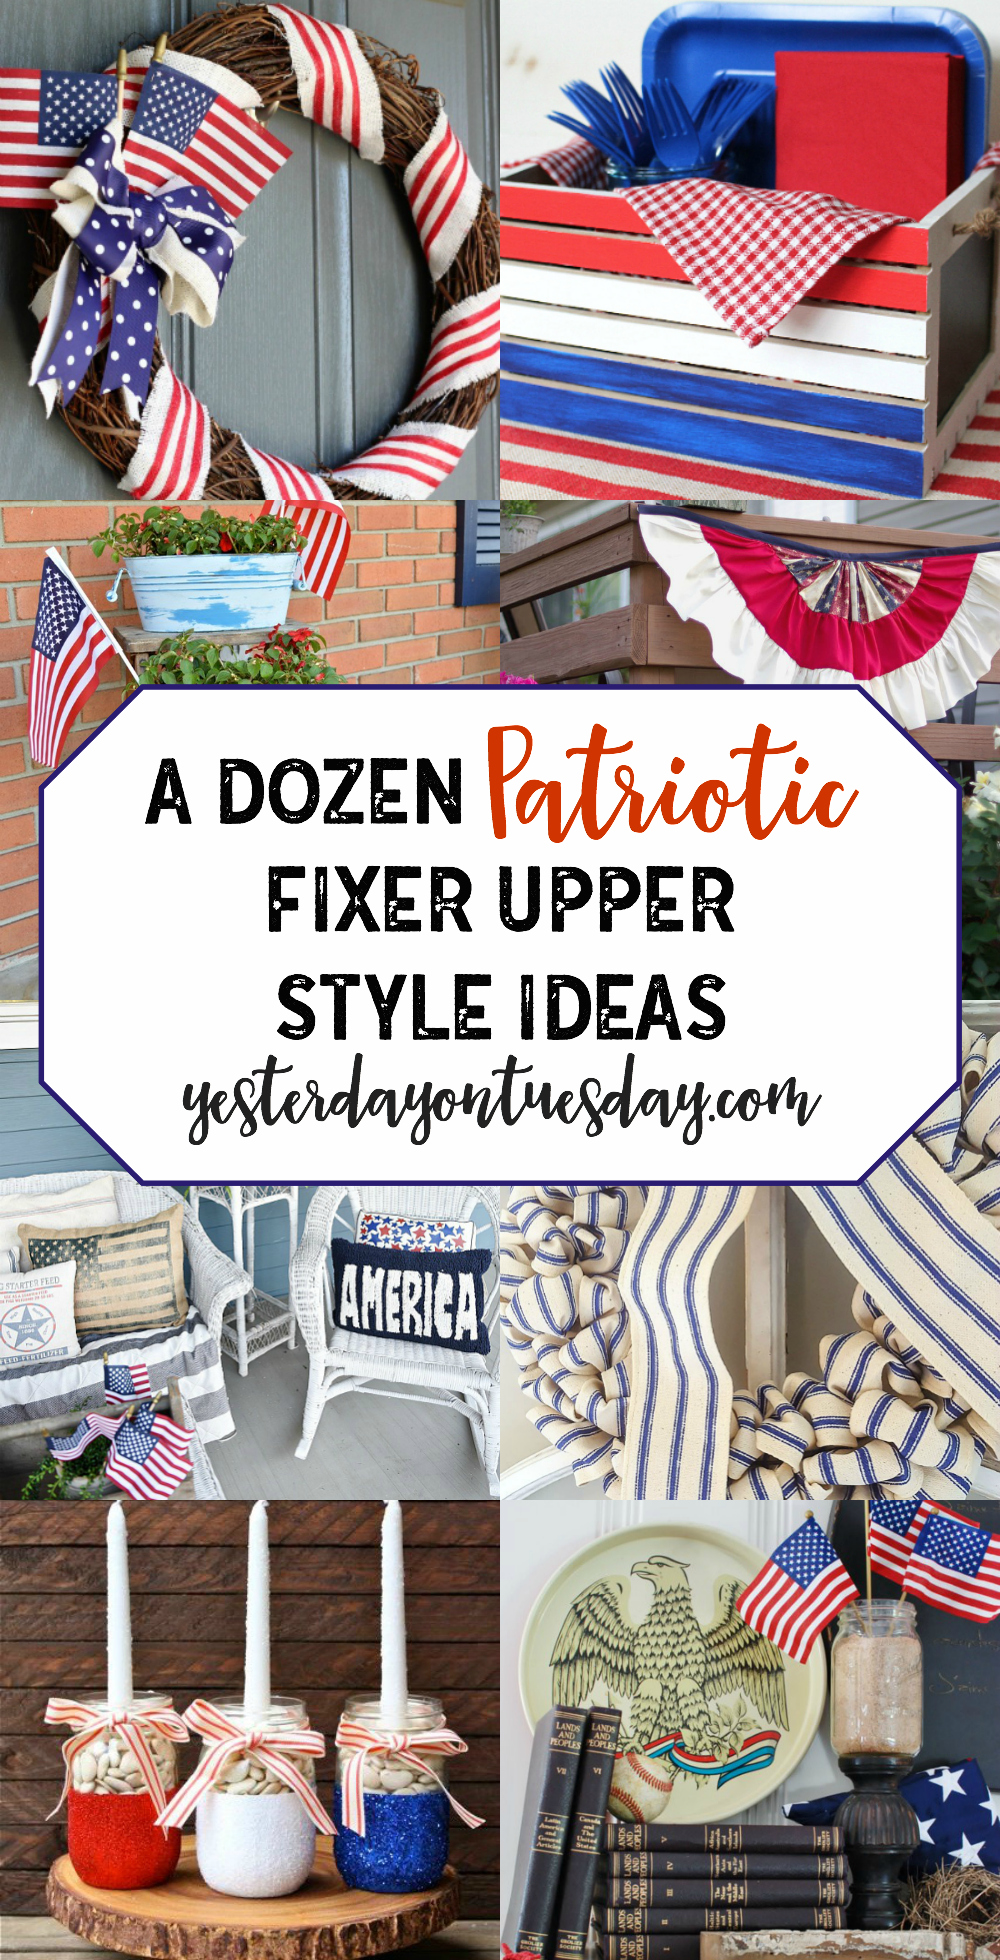 a dozen patriotic fixer upper style ideas yesterday on. Black Bedroom Furniture Sets. Home Design Ideas